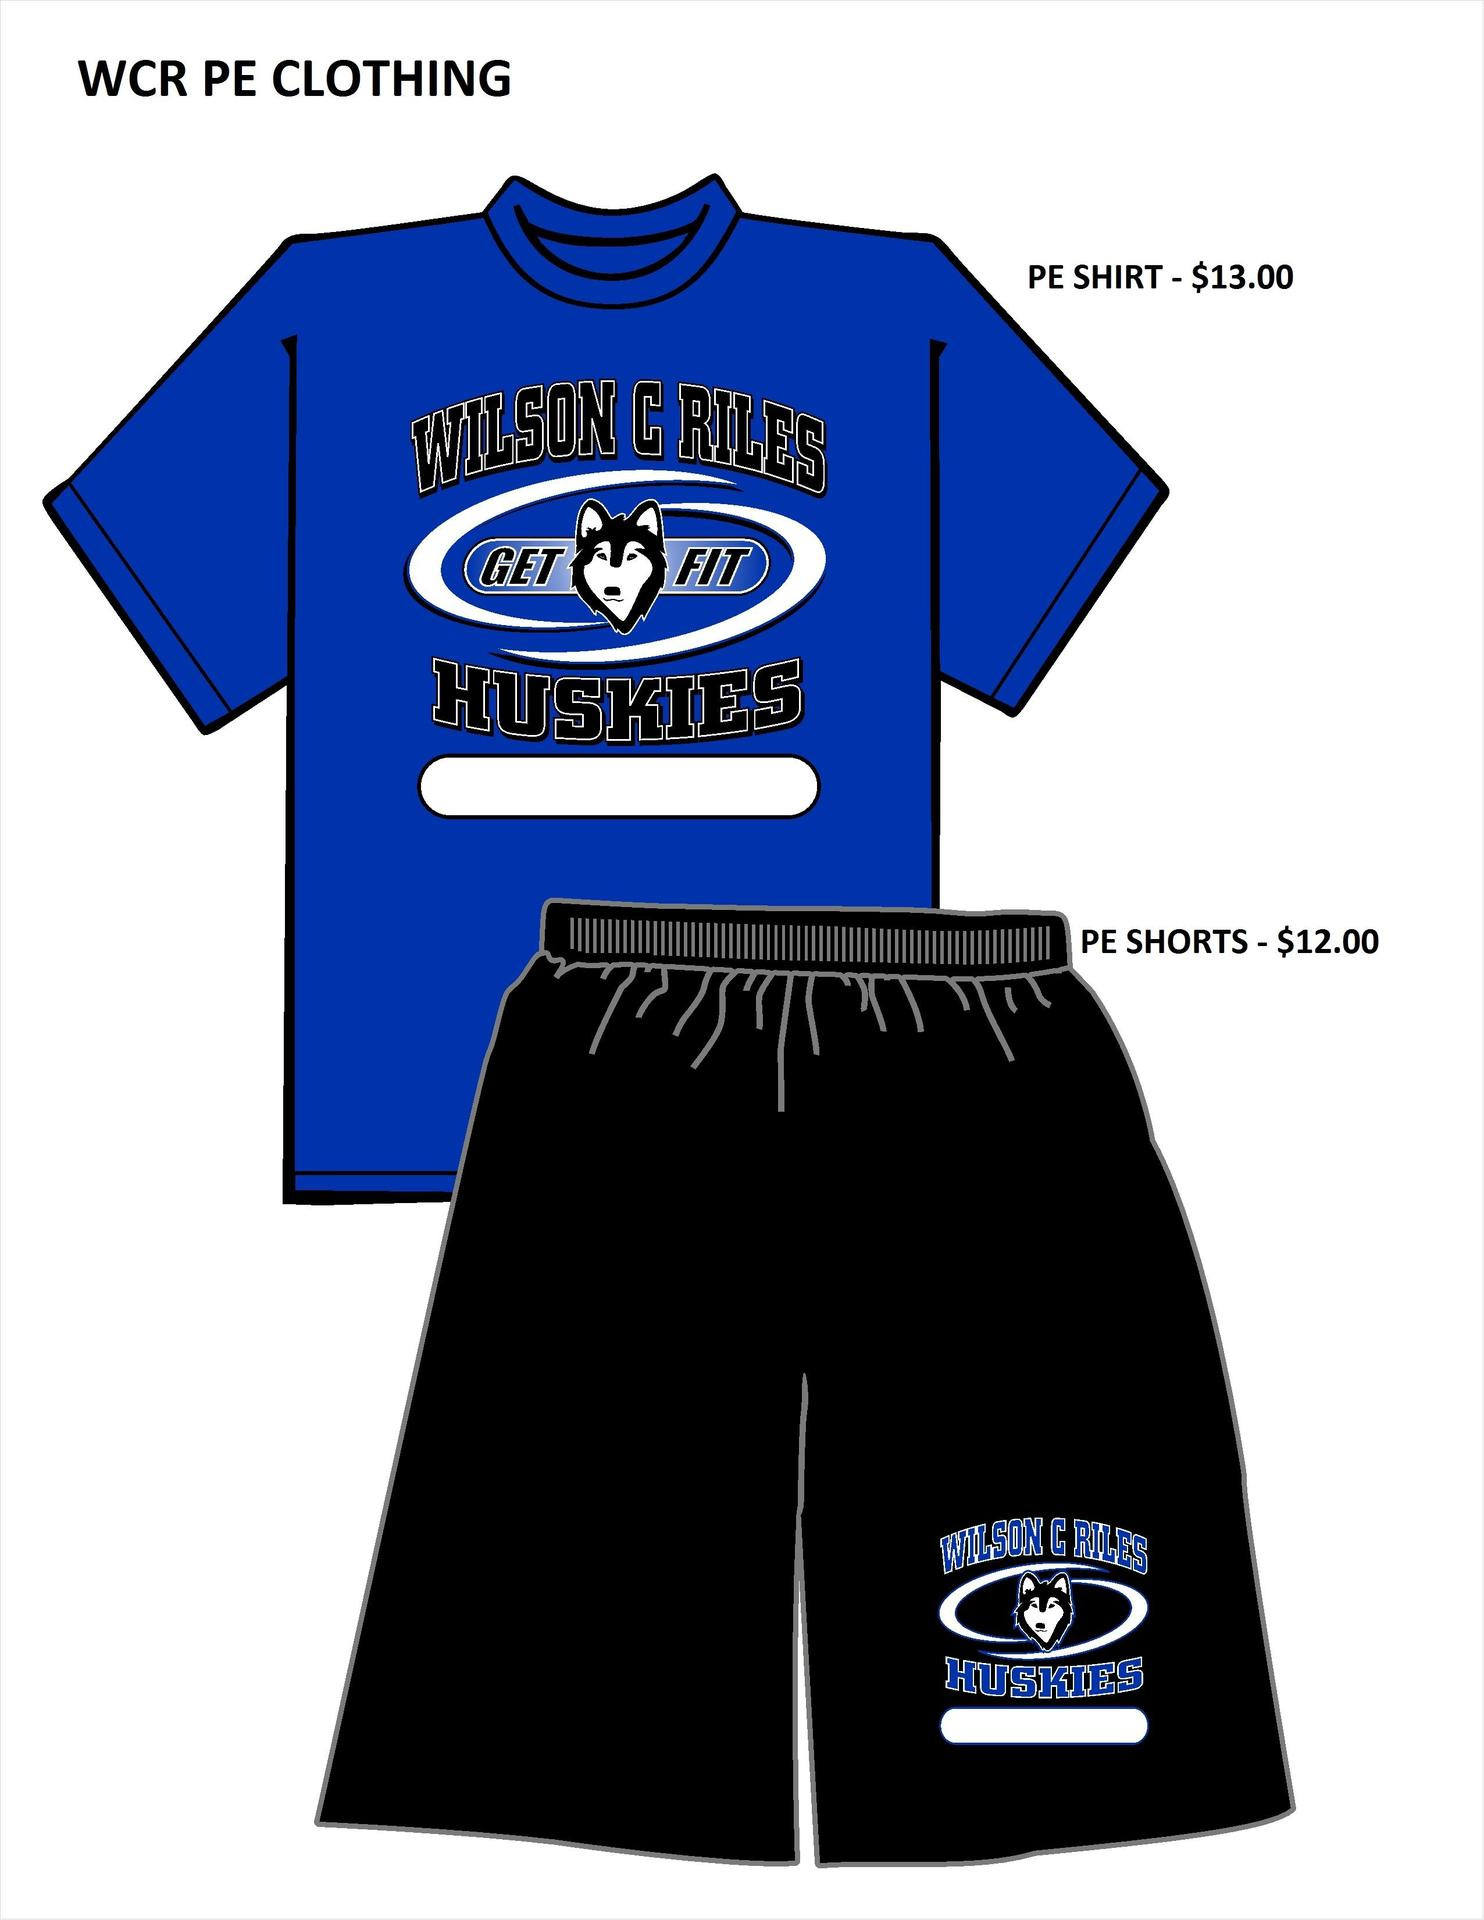 WCR PE Clothes Prices 2018-2019  Shirt is $13, shorts $12